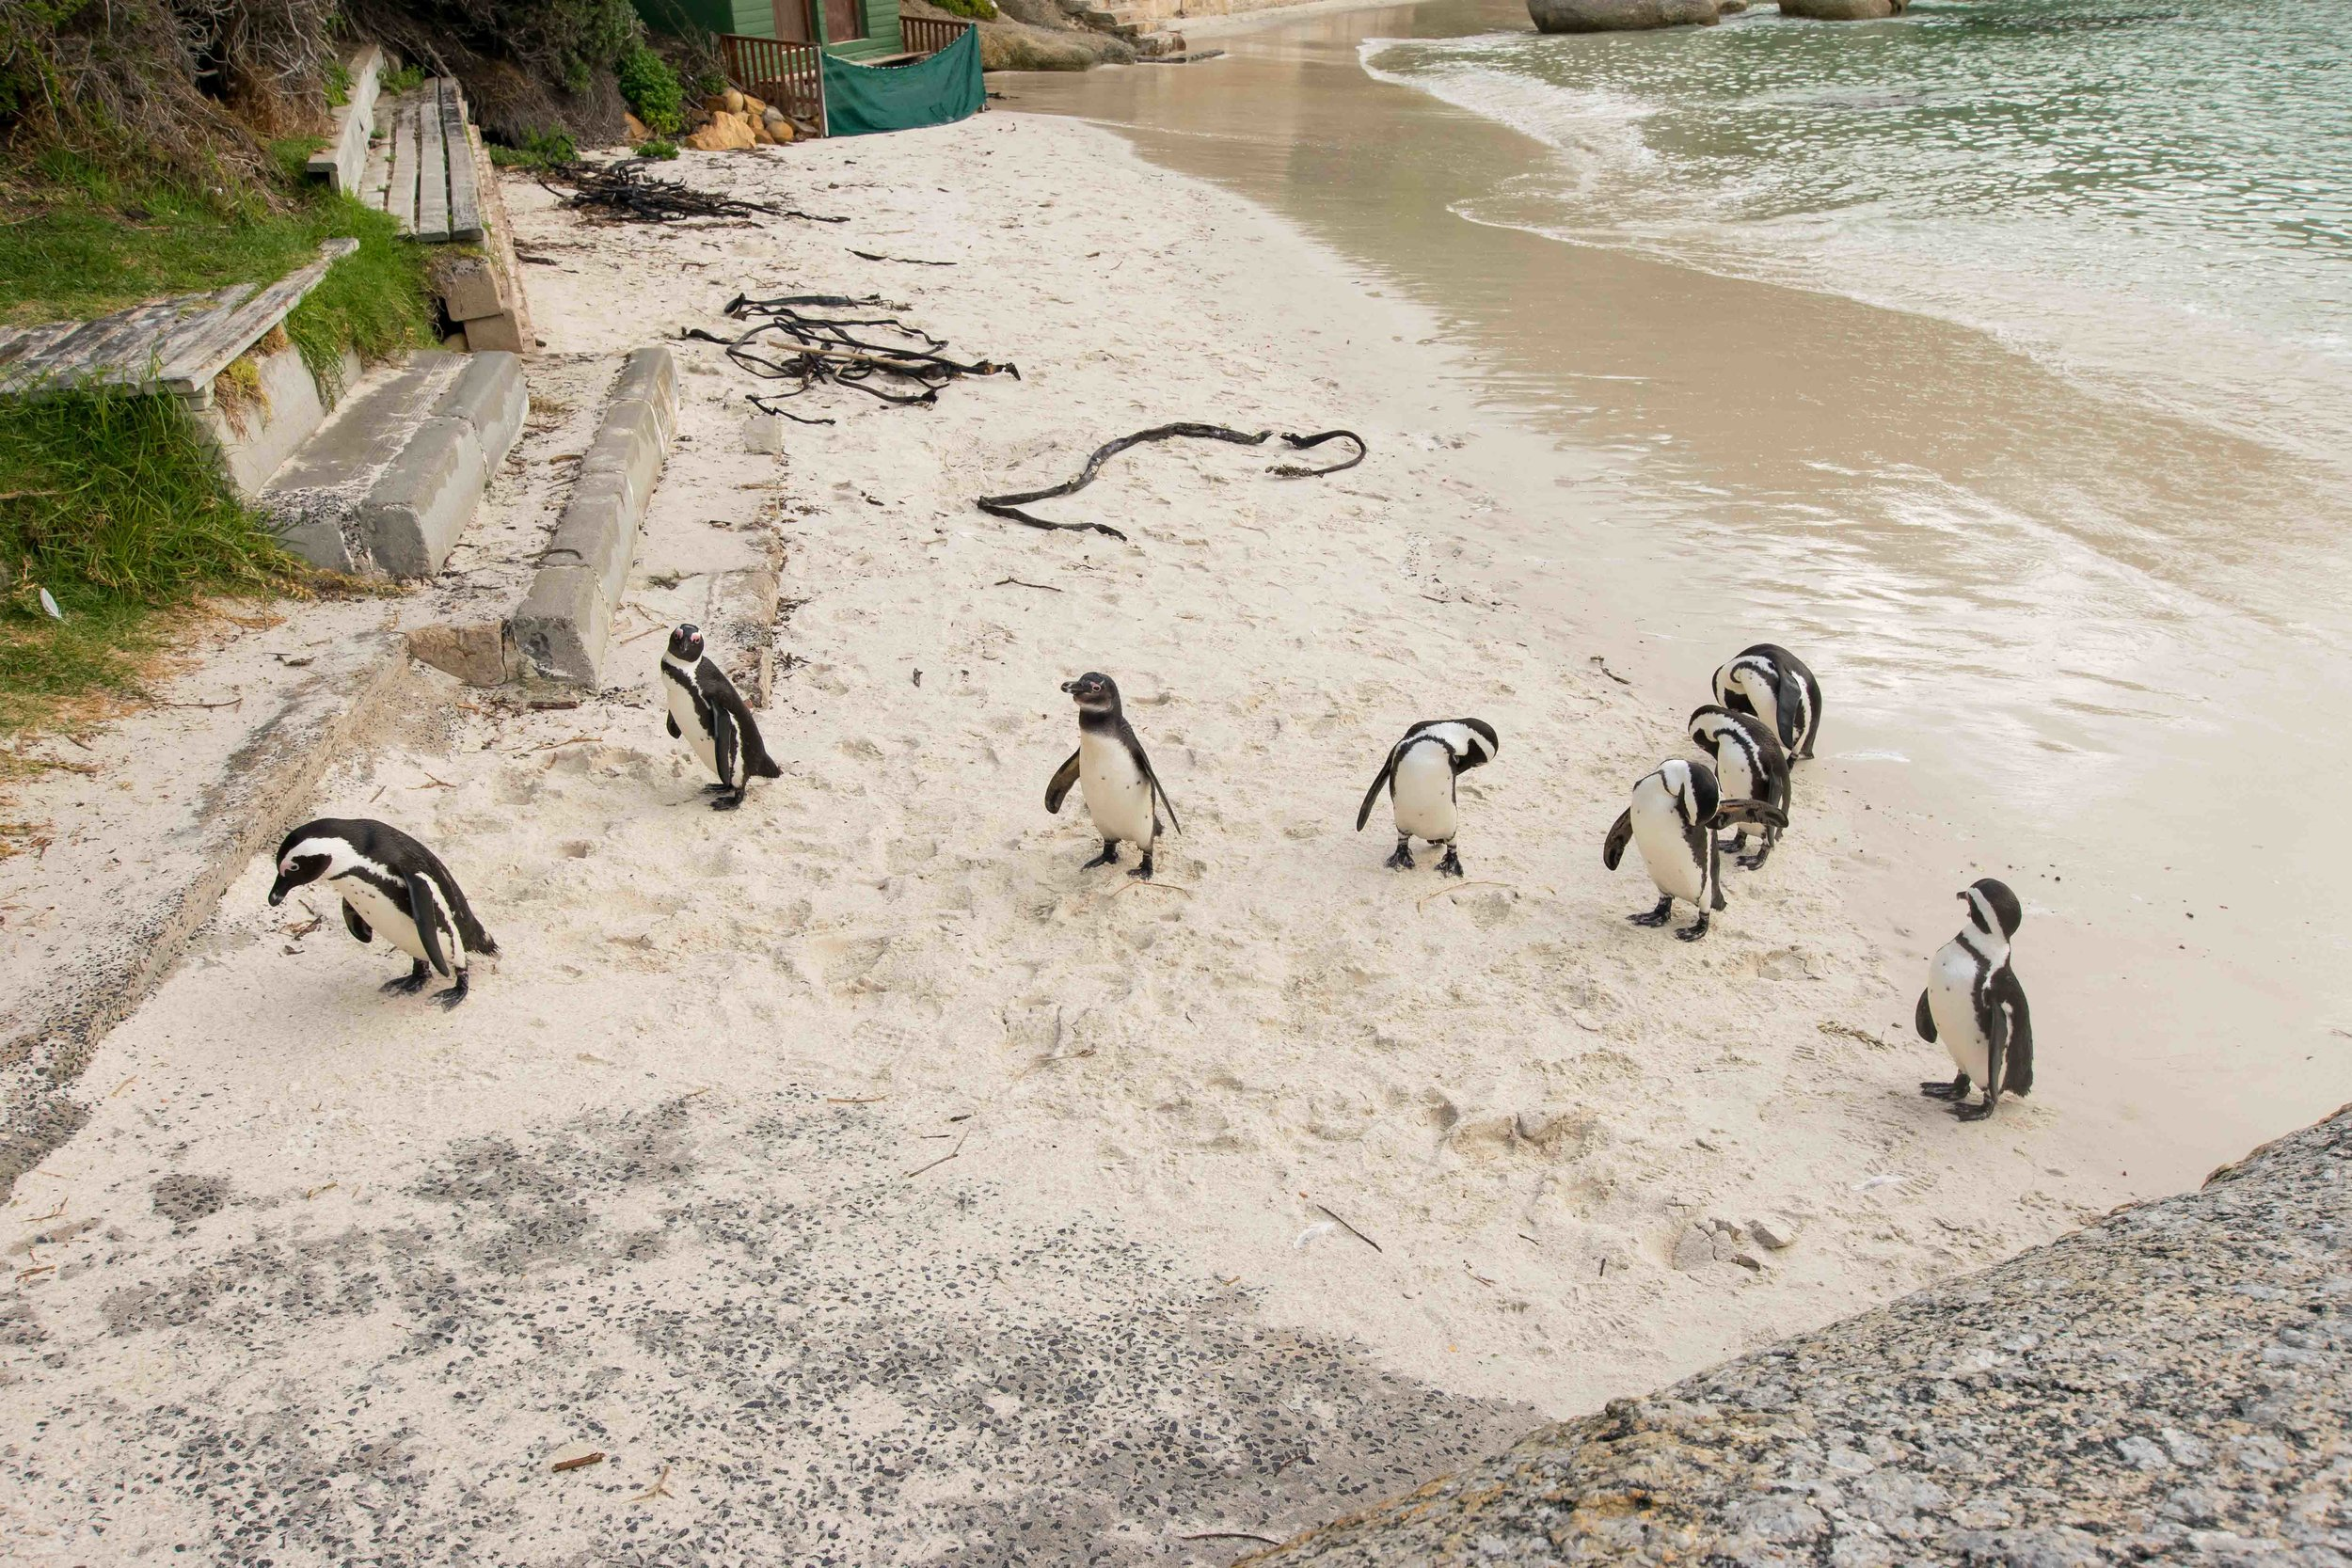 Seeing the penguins in South Africa is one of the top things to do